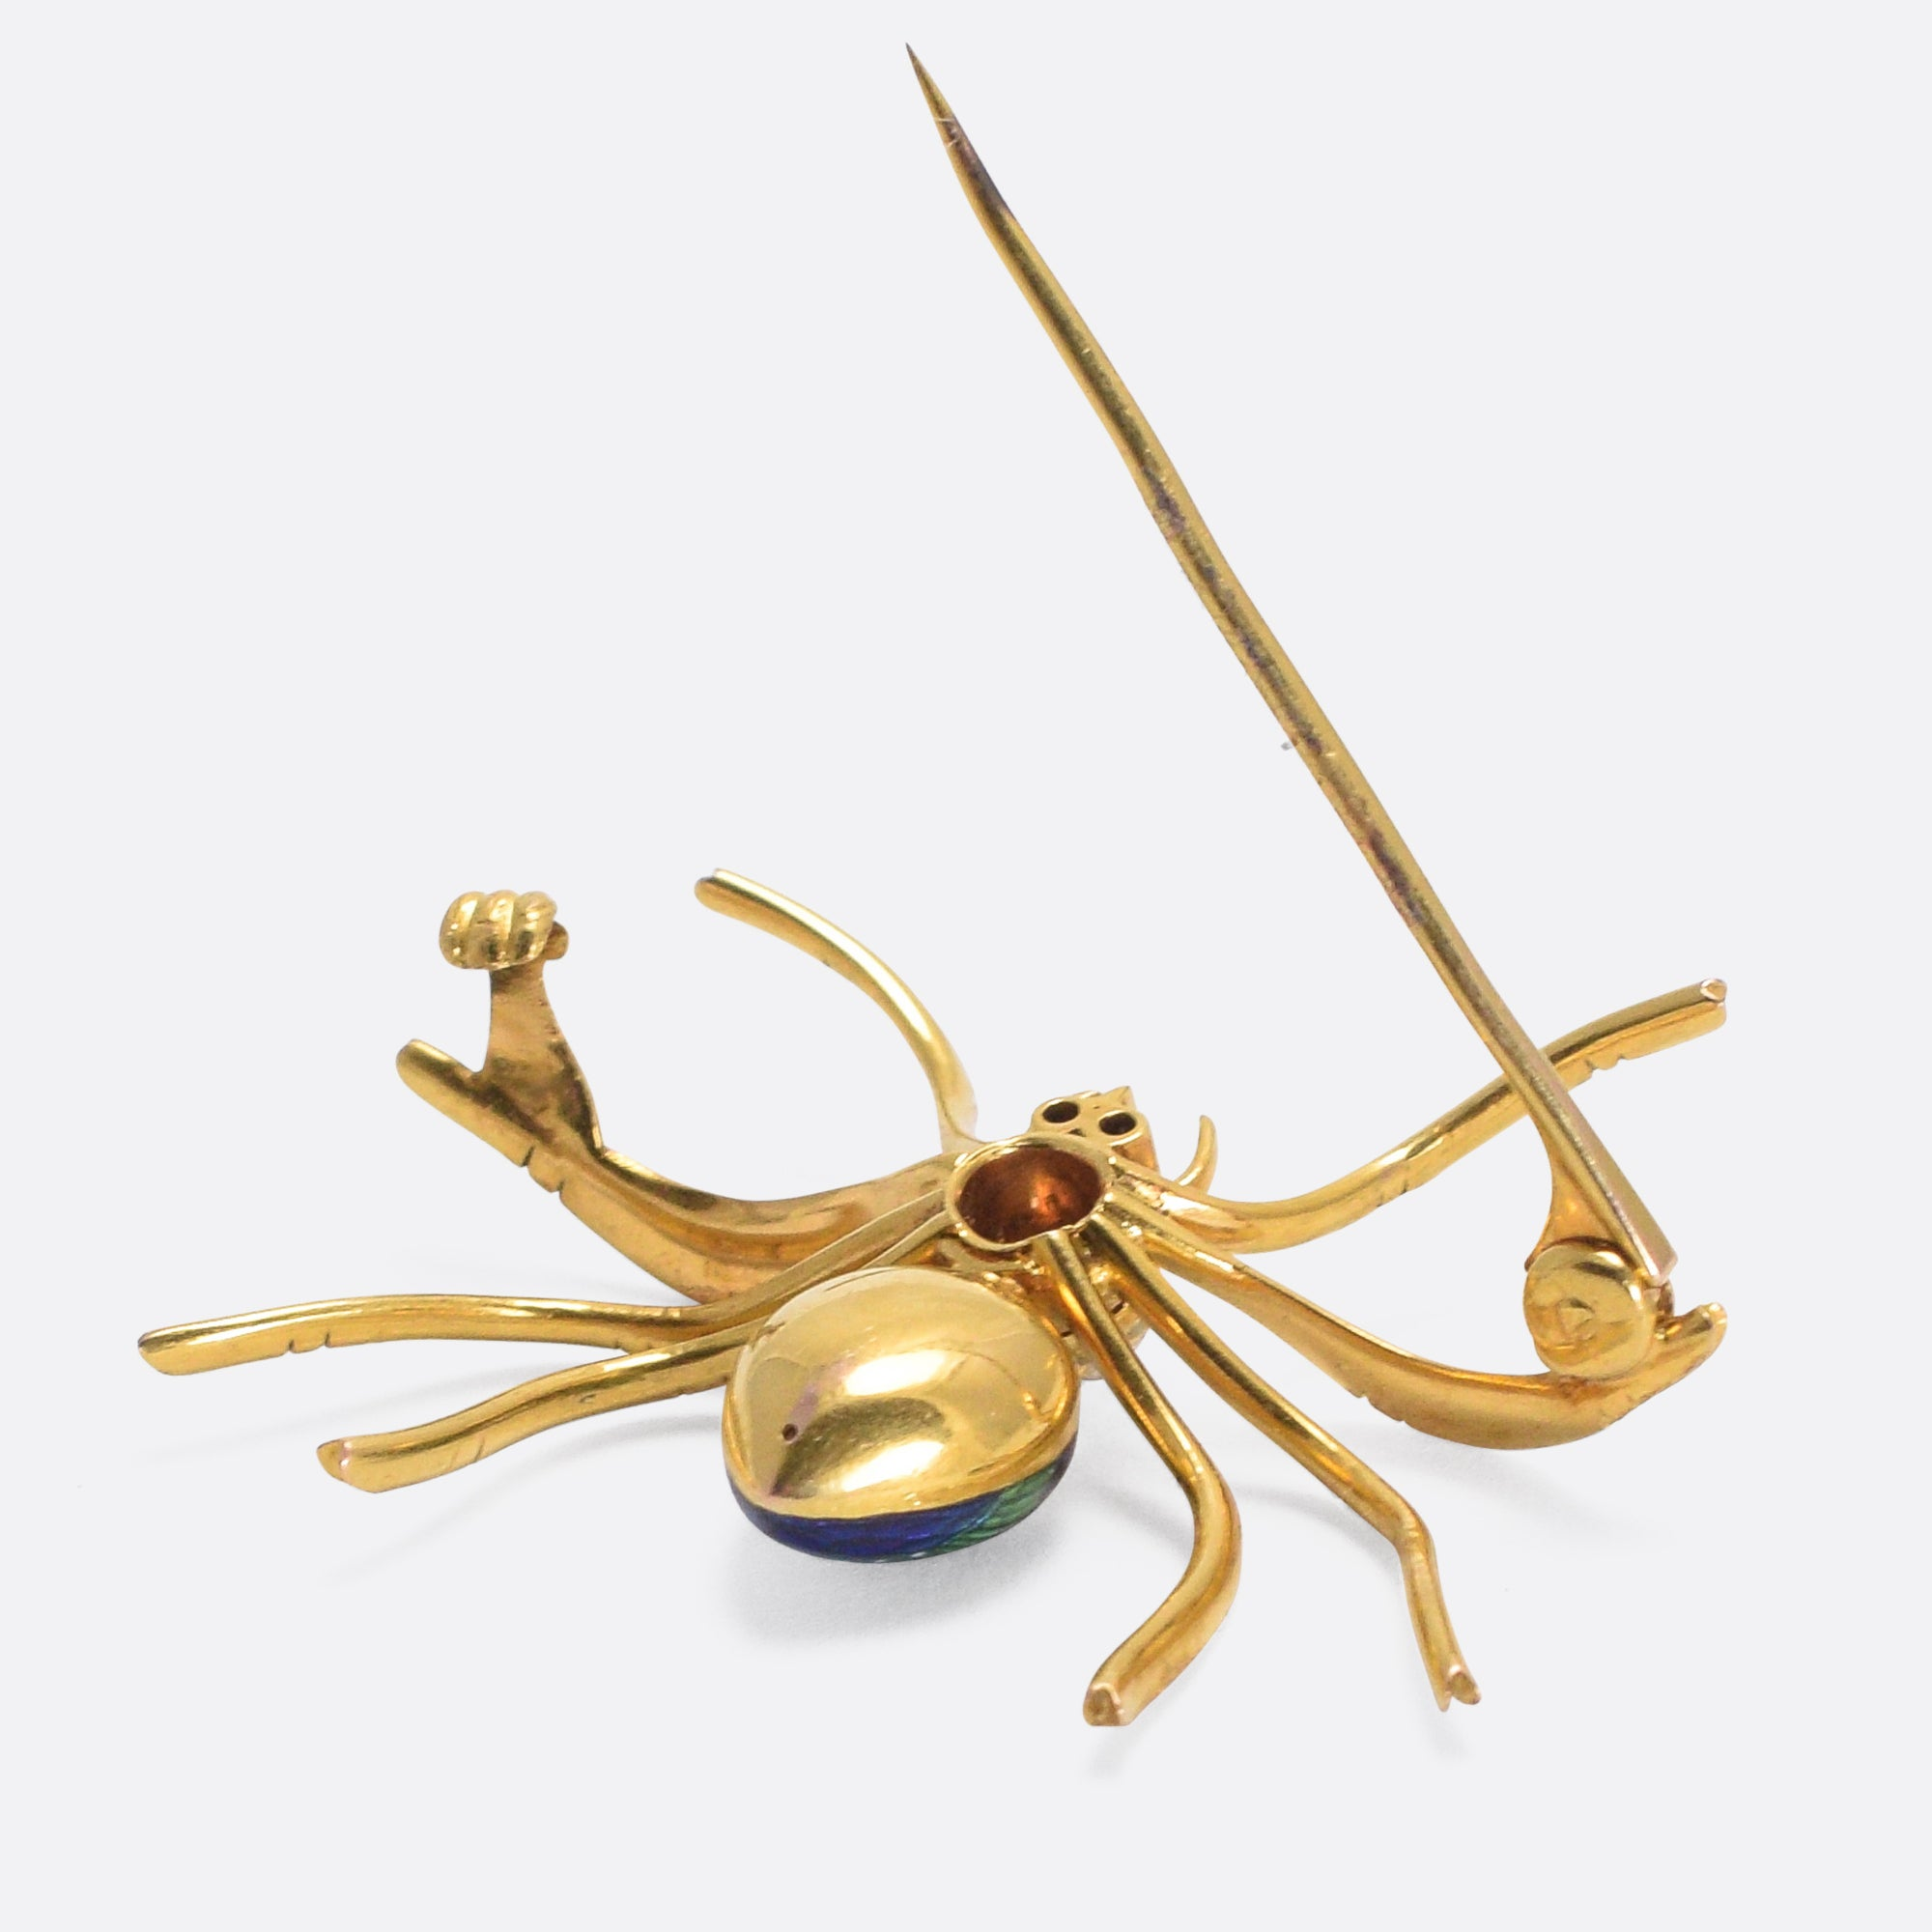 j desktopdefault and fly by antique pearl enamelled brooch c tiffany s diamond